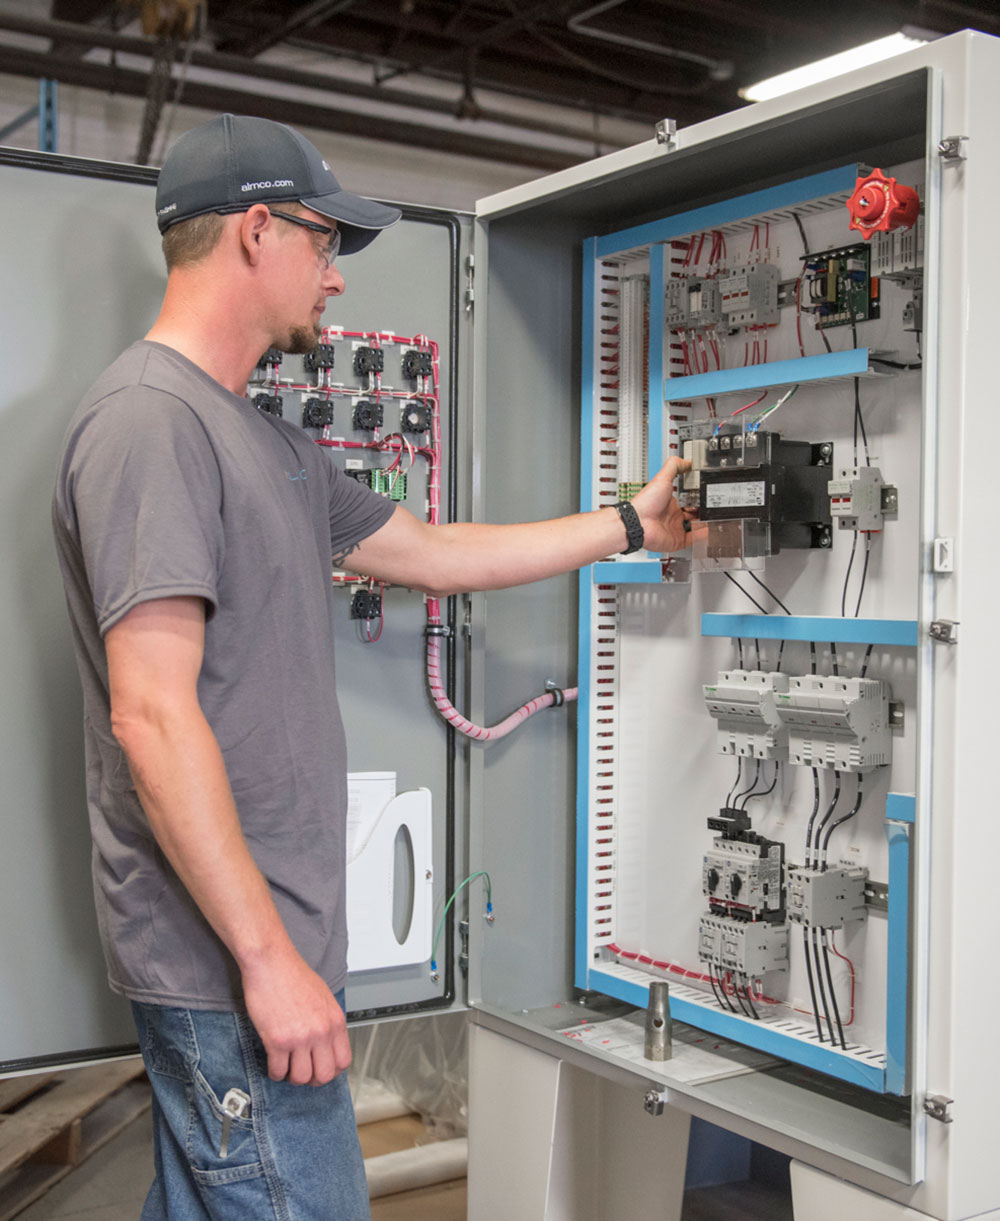 Employee working on electrical panel